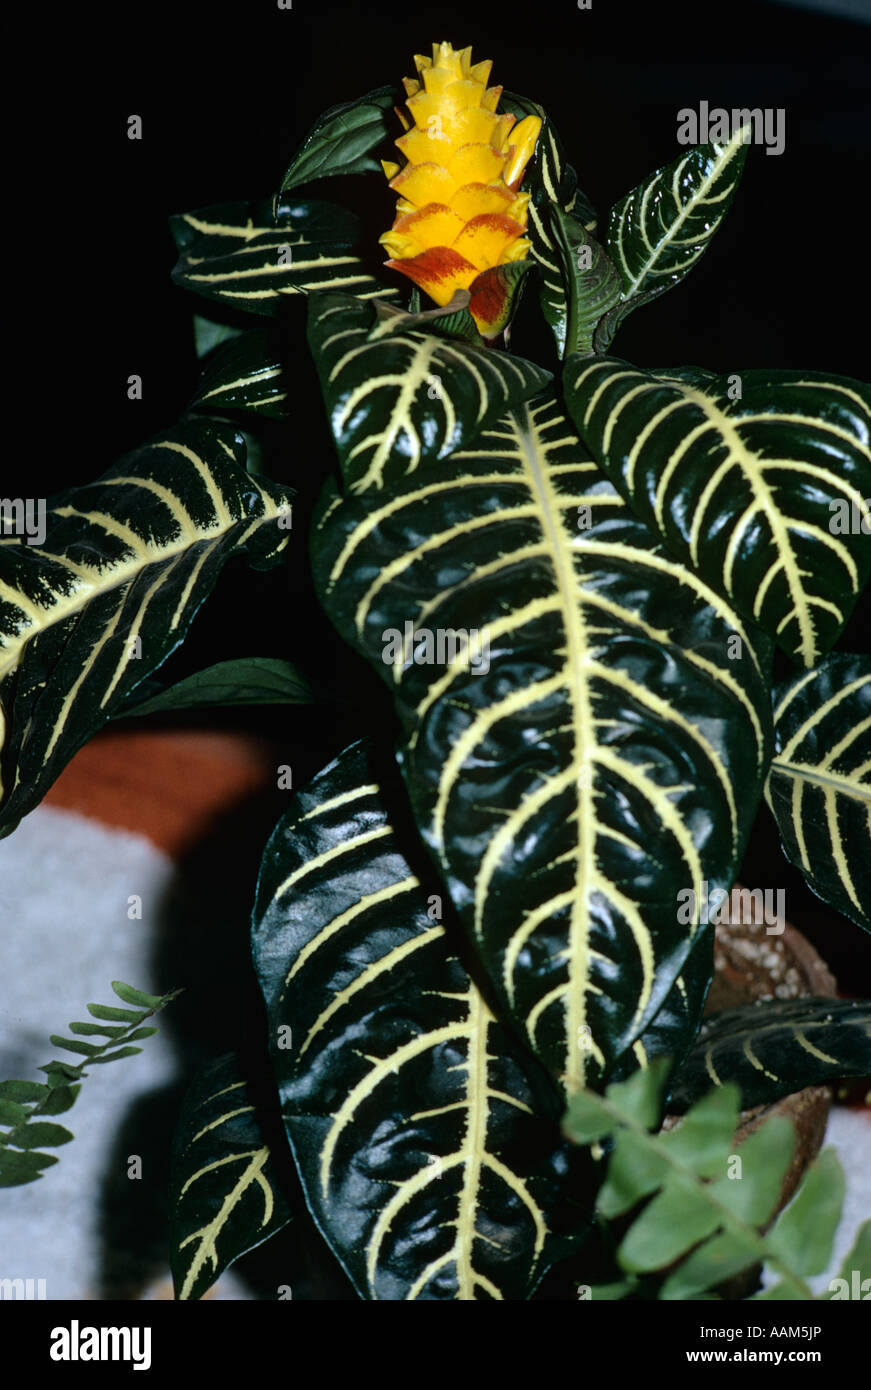 TROPICAL PLANT WITH YELLOW BLOOM BLOSSOM AND THICK GREEN BROAD LEAF LEAVES WITH WHITE SPINE & VEINS HOUSE PLANT - Stock Image